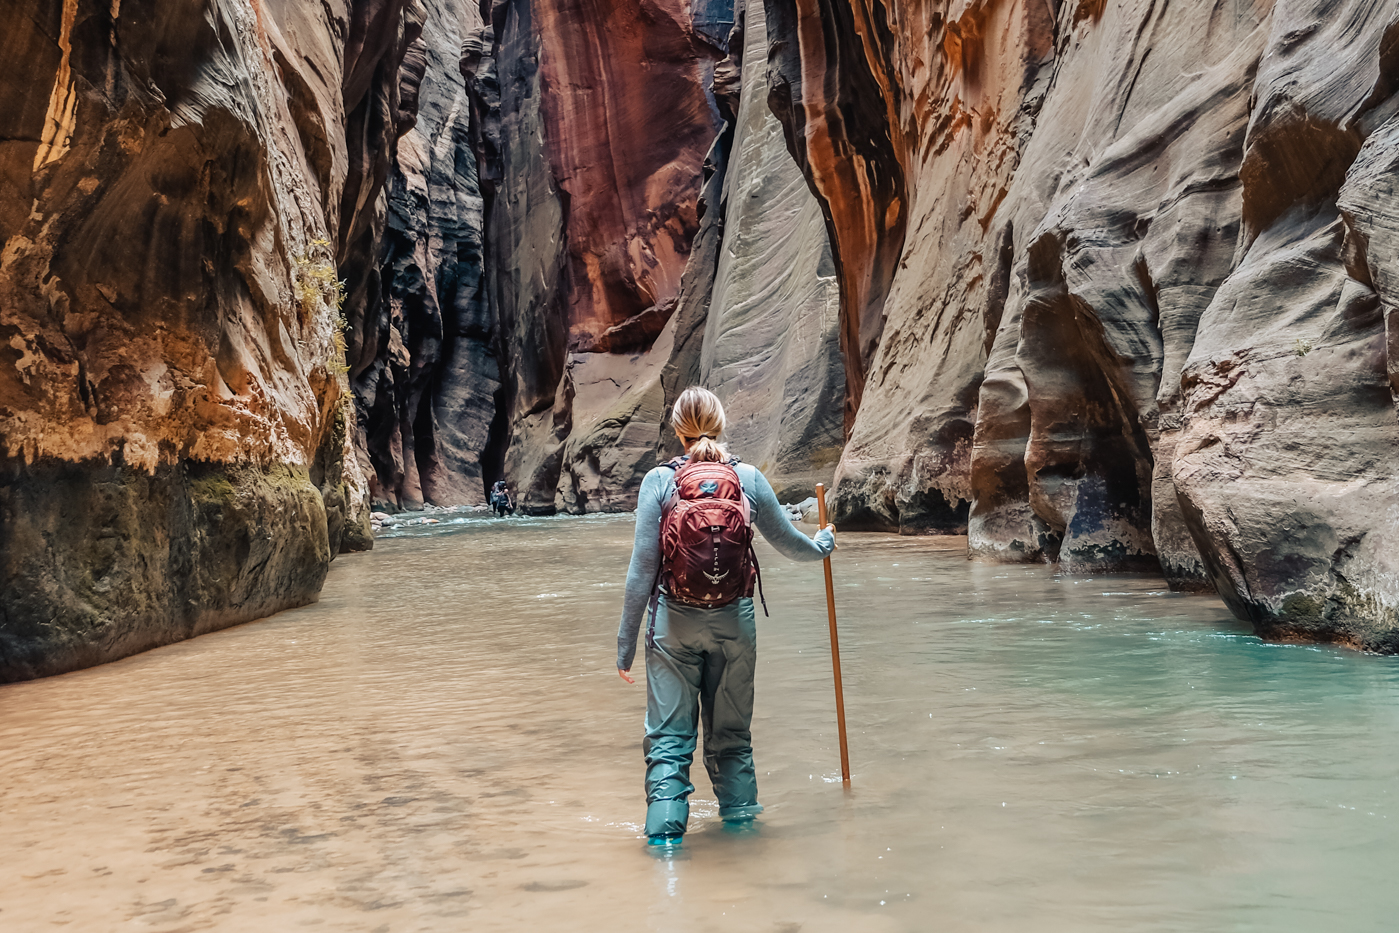 The iconic Zion Narrows